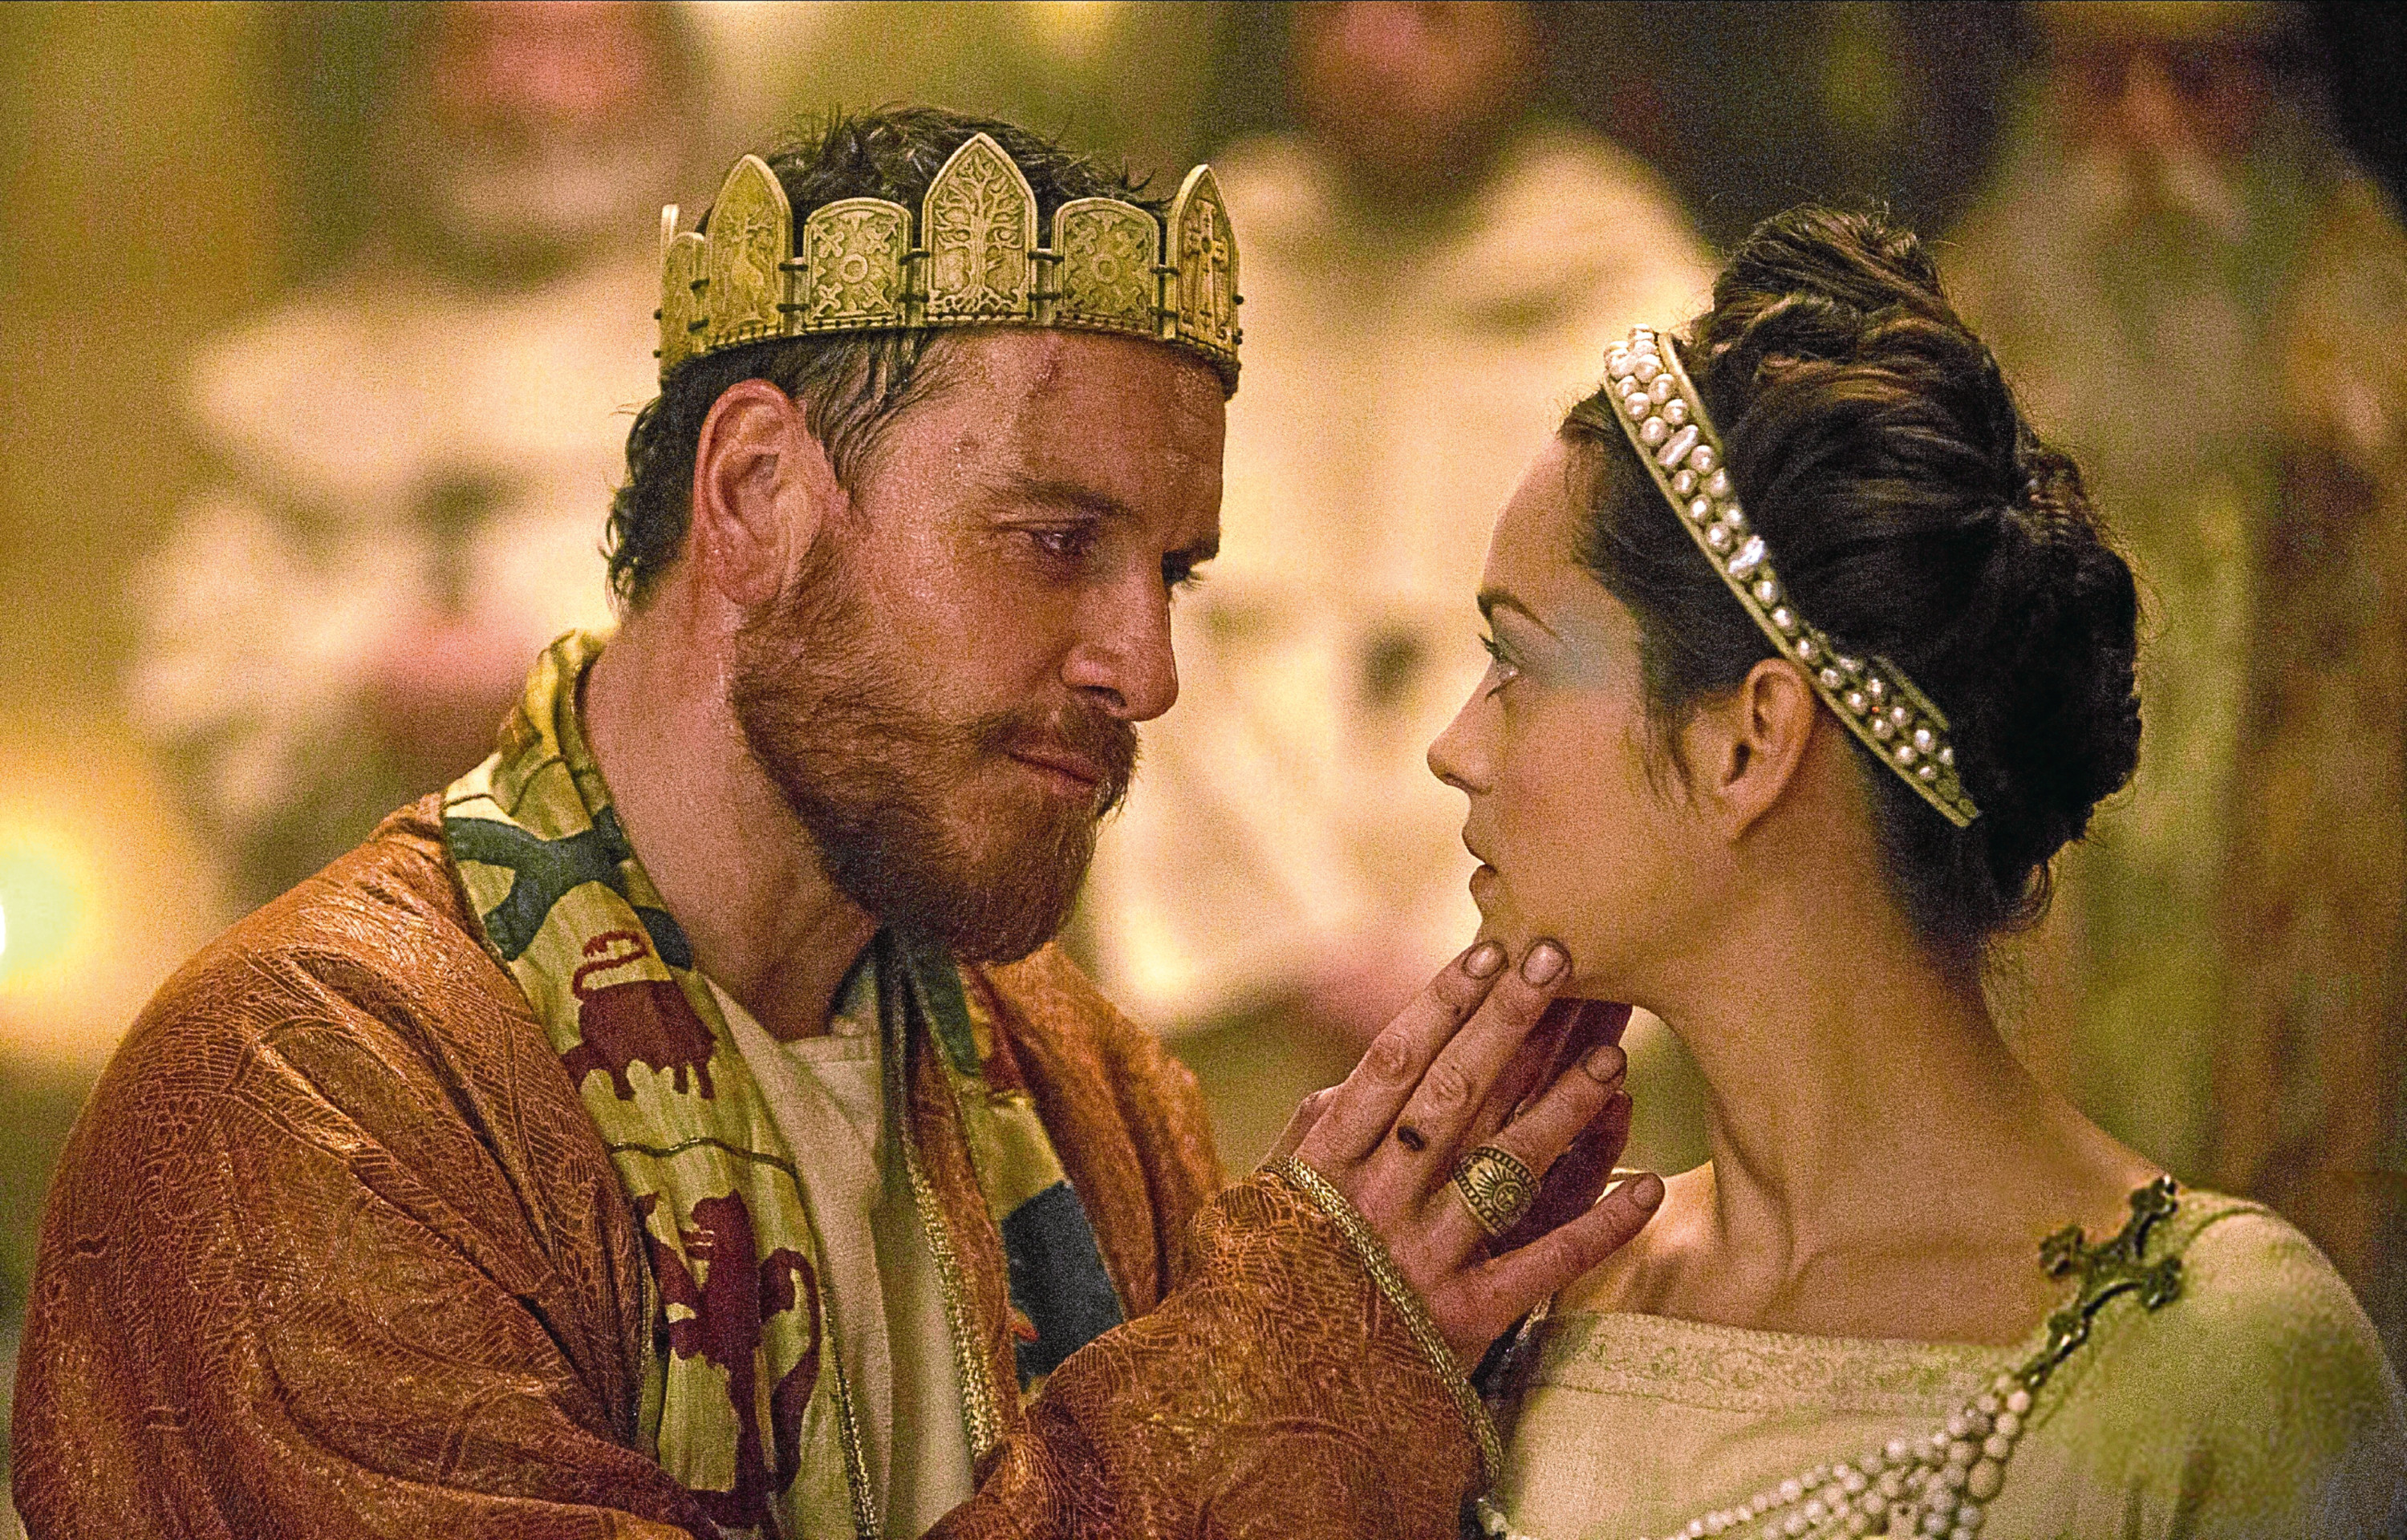 MICHAEL FASSBENDER & MARION COTILLARD Film 'MACBETH' (2015) Directed By JUSTIN KURZEL 23 May 2015 SAM51121 Allstar/THE WEINSTEIN COMPANY  (USA/UK/FR 2015)  **WARNING** This Photograph is for editorial use only and is the copyright of THE WEINSTEIN COMPANY  and/or the Photographer assigned by the Film or Production Company & can only be reproduced by publications in conjunction with the promotion of the above Film. A Mandatory Credit To THE WEINSTEIN COMPANY is required. The Photographer should also be credited when known. No commercial use can be granted without written authority from the Film Company.